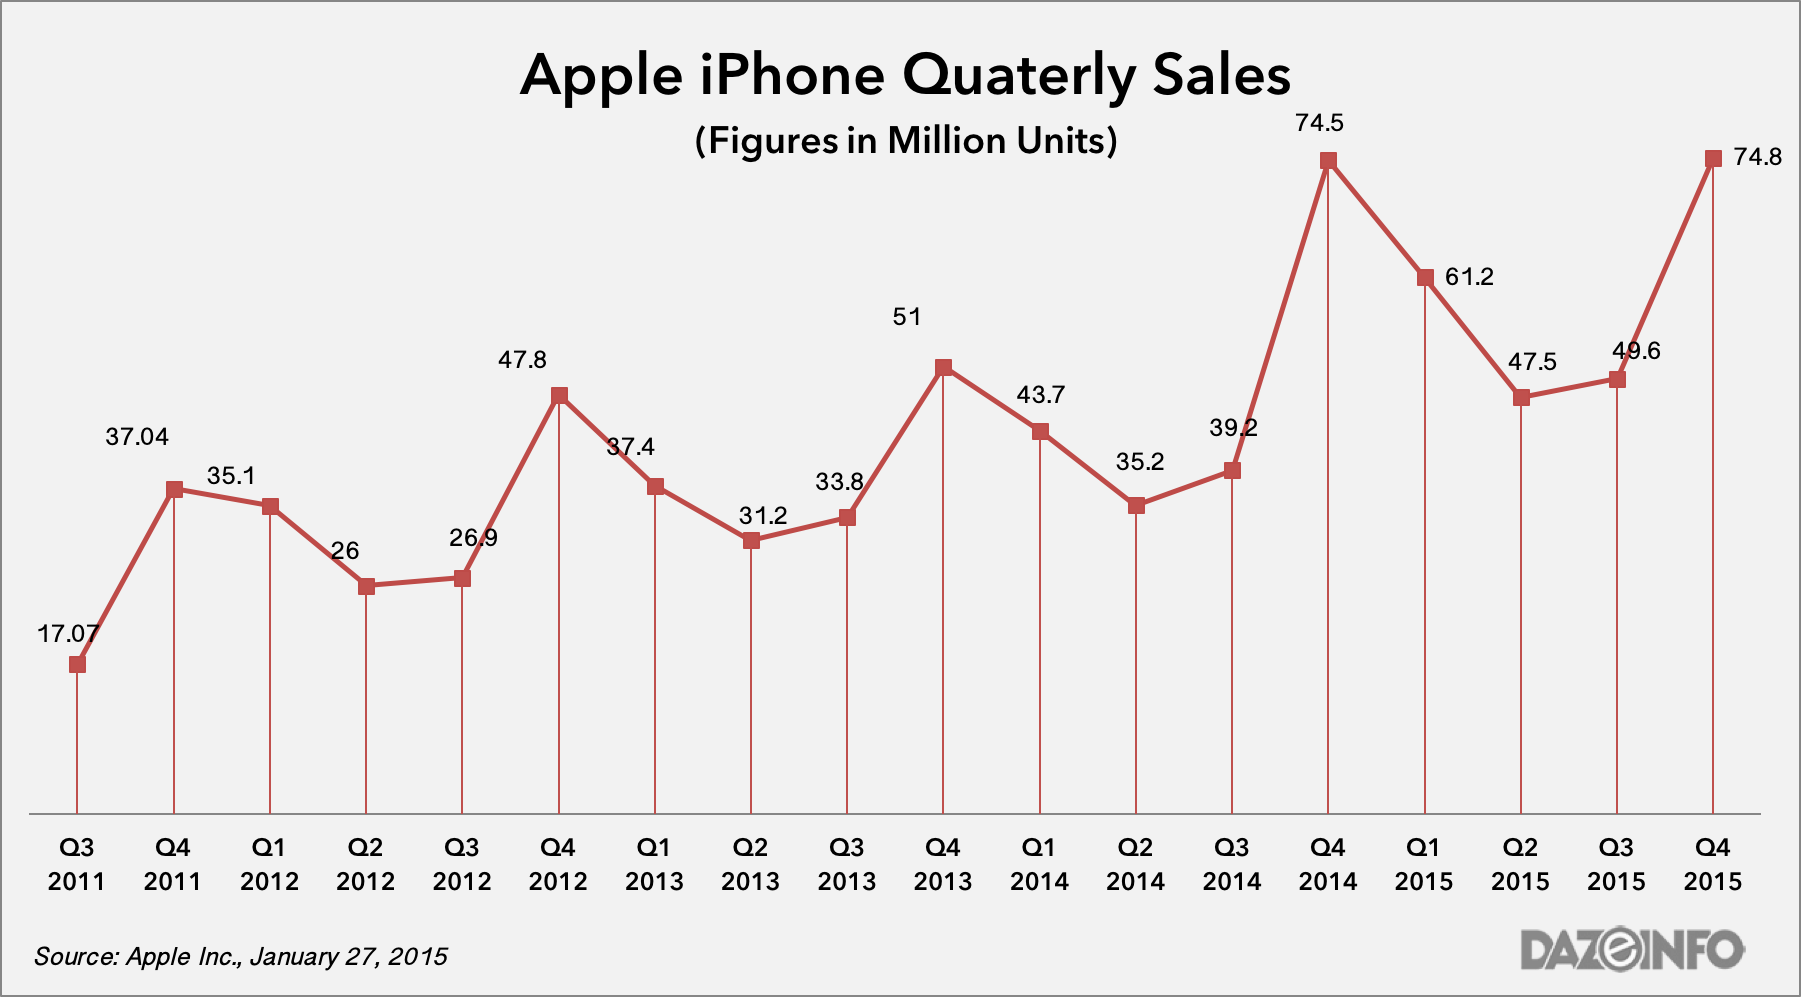 Apple iPhone shipment Q4 2015